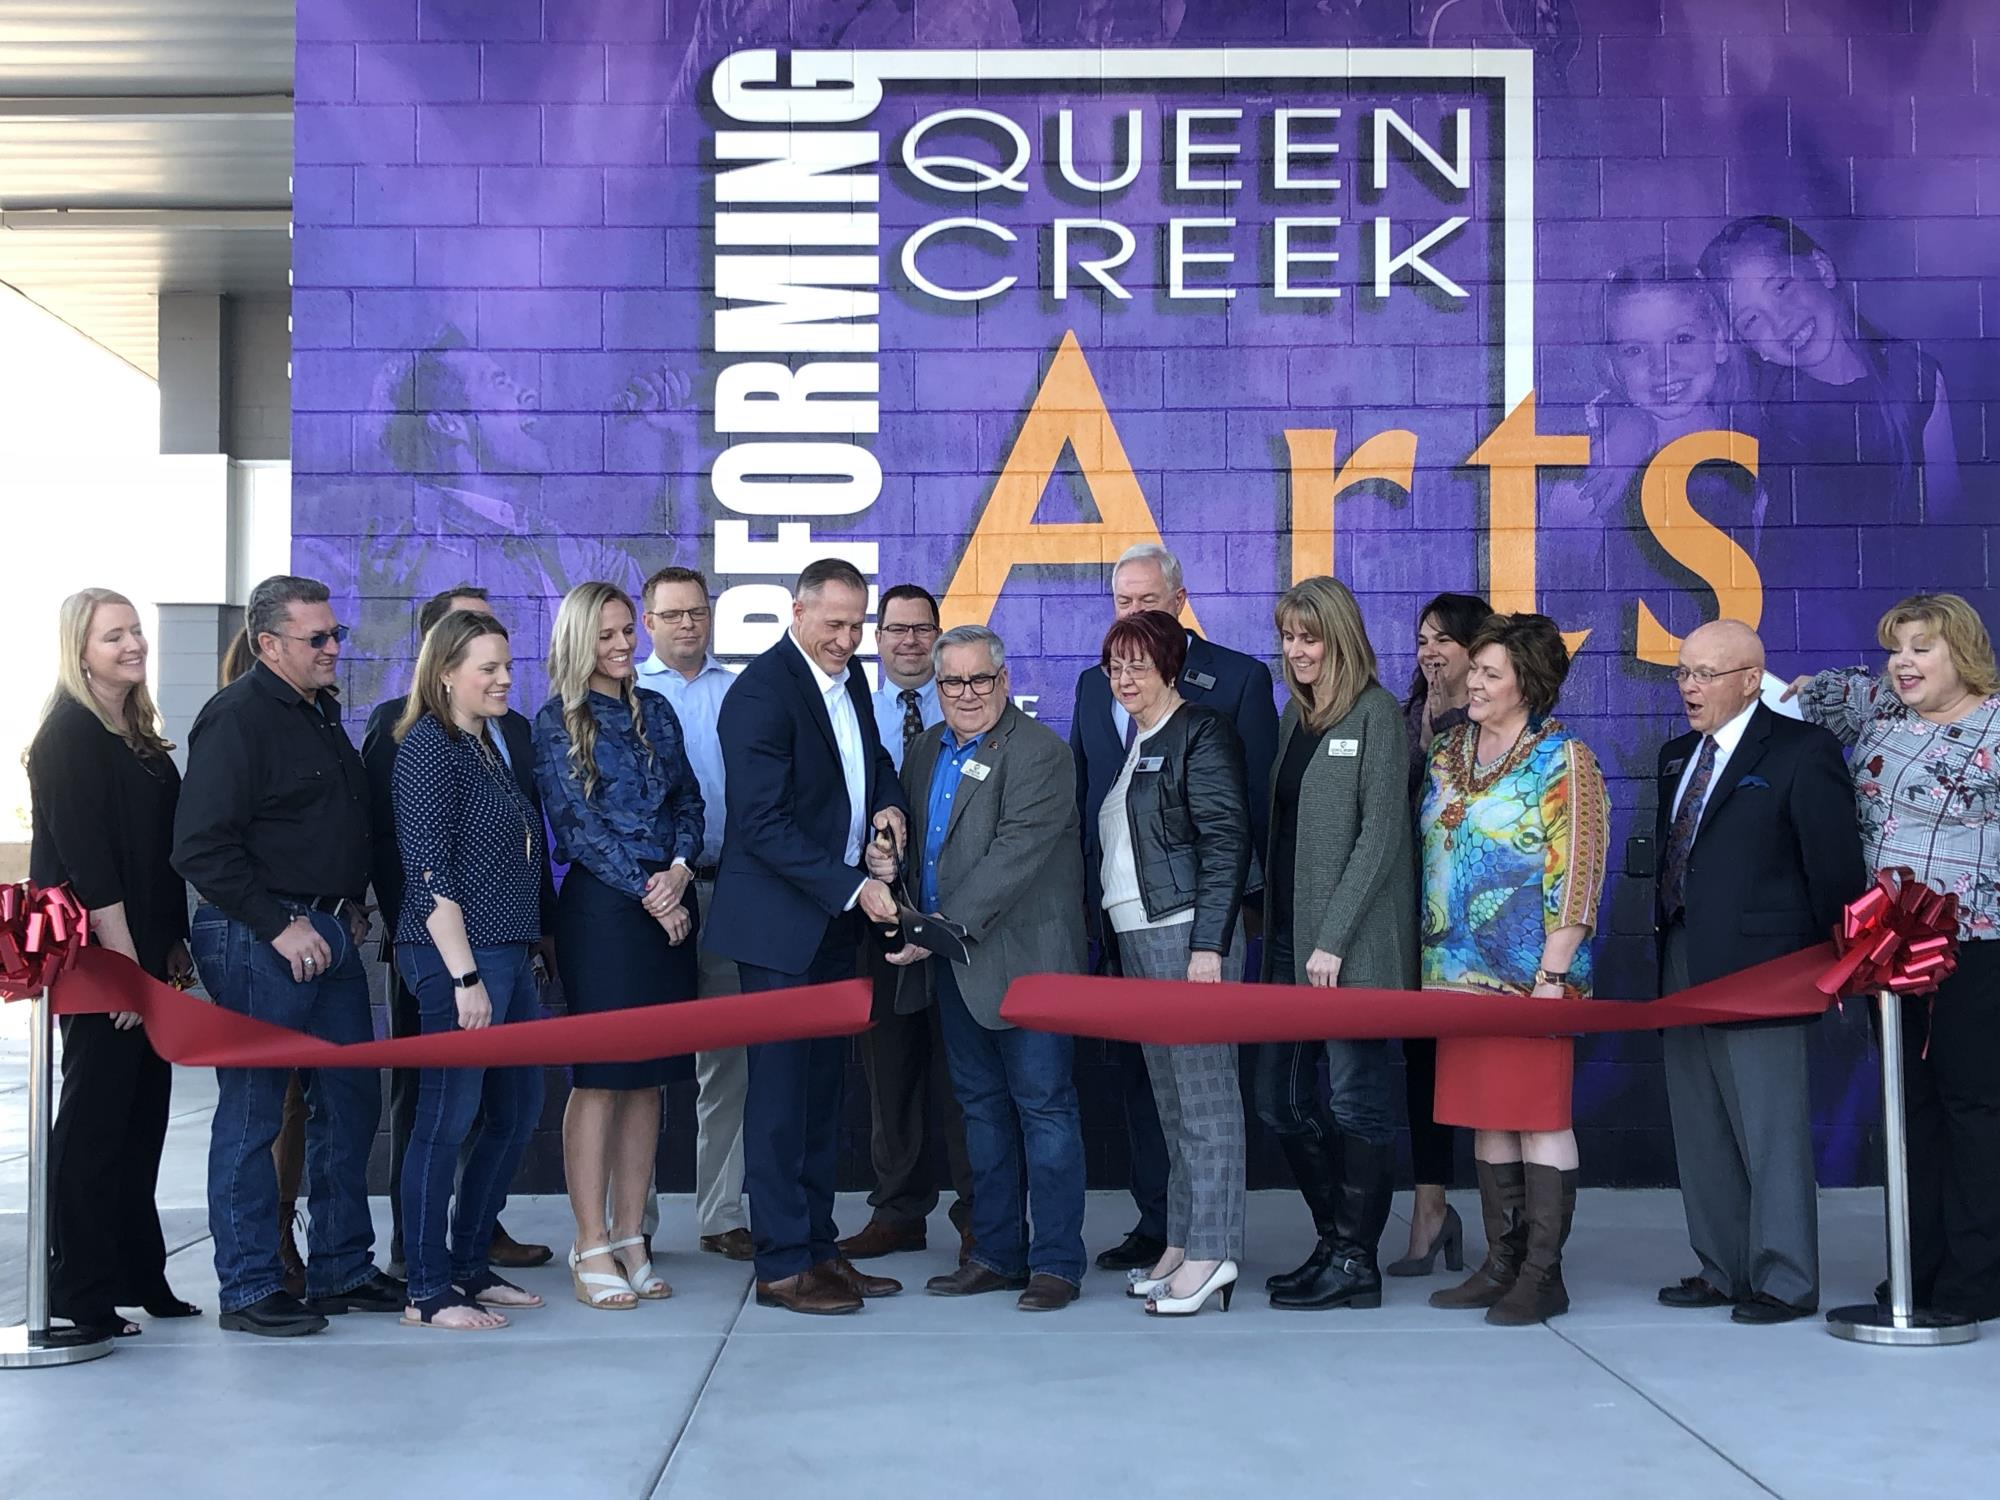 Mayor Barney and Council Member Oliphant at the Queen Creek Performing Arts Center New Lobby Addition Ribbon Cutting on January 11